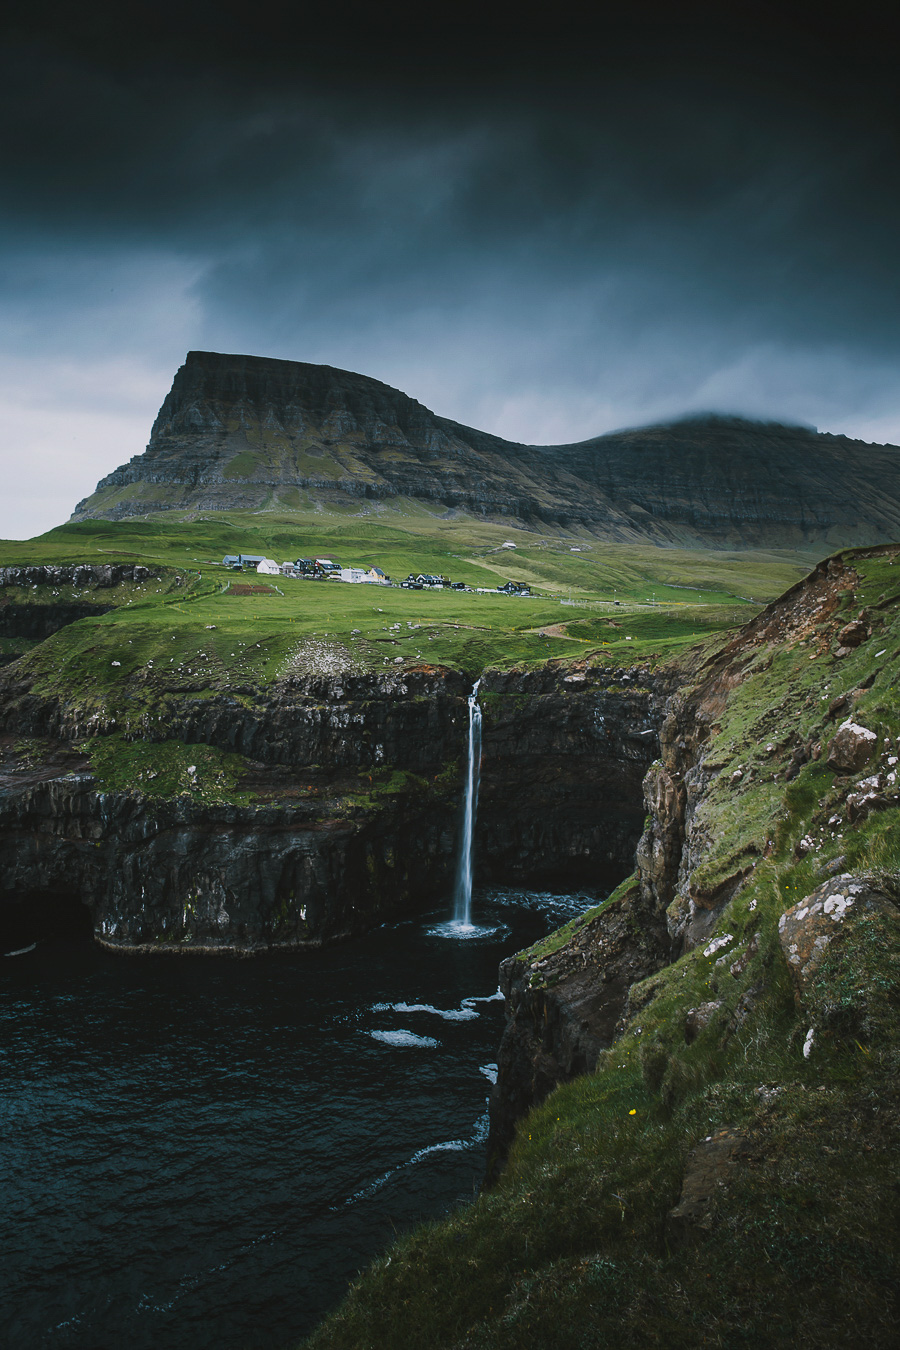 Houses by the waterfall and tall mountains